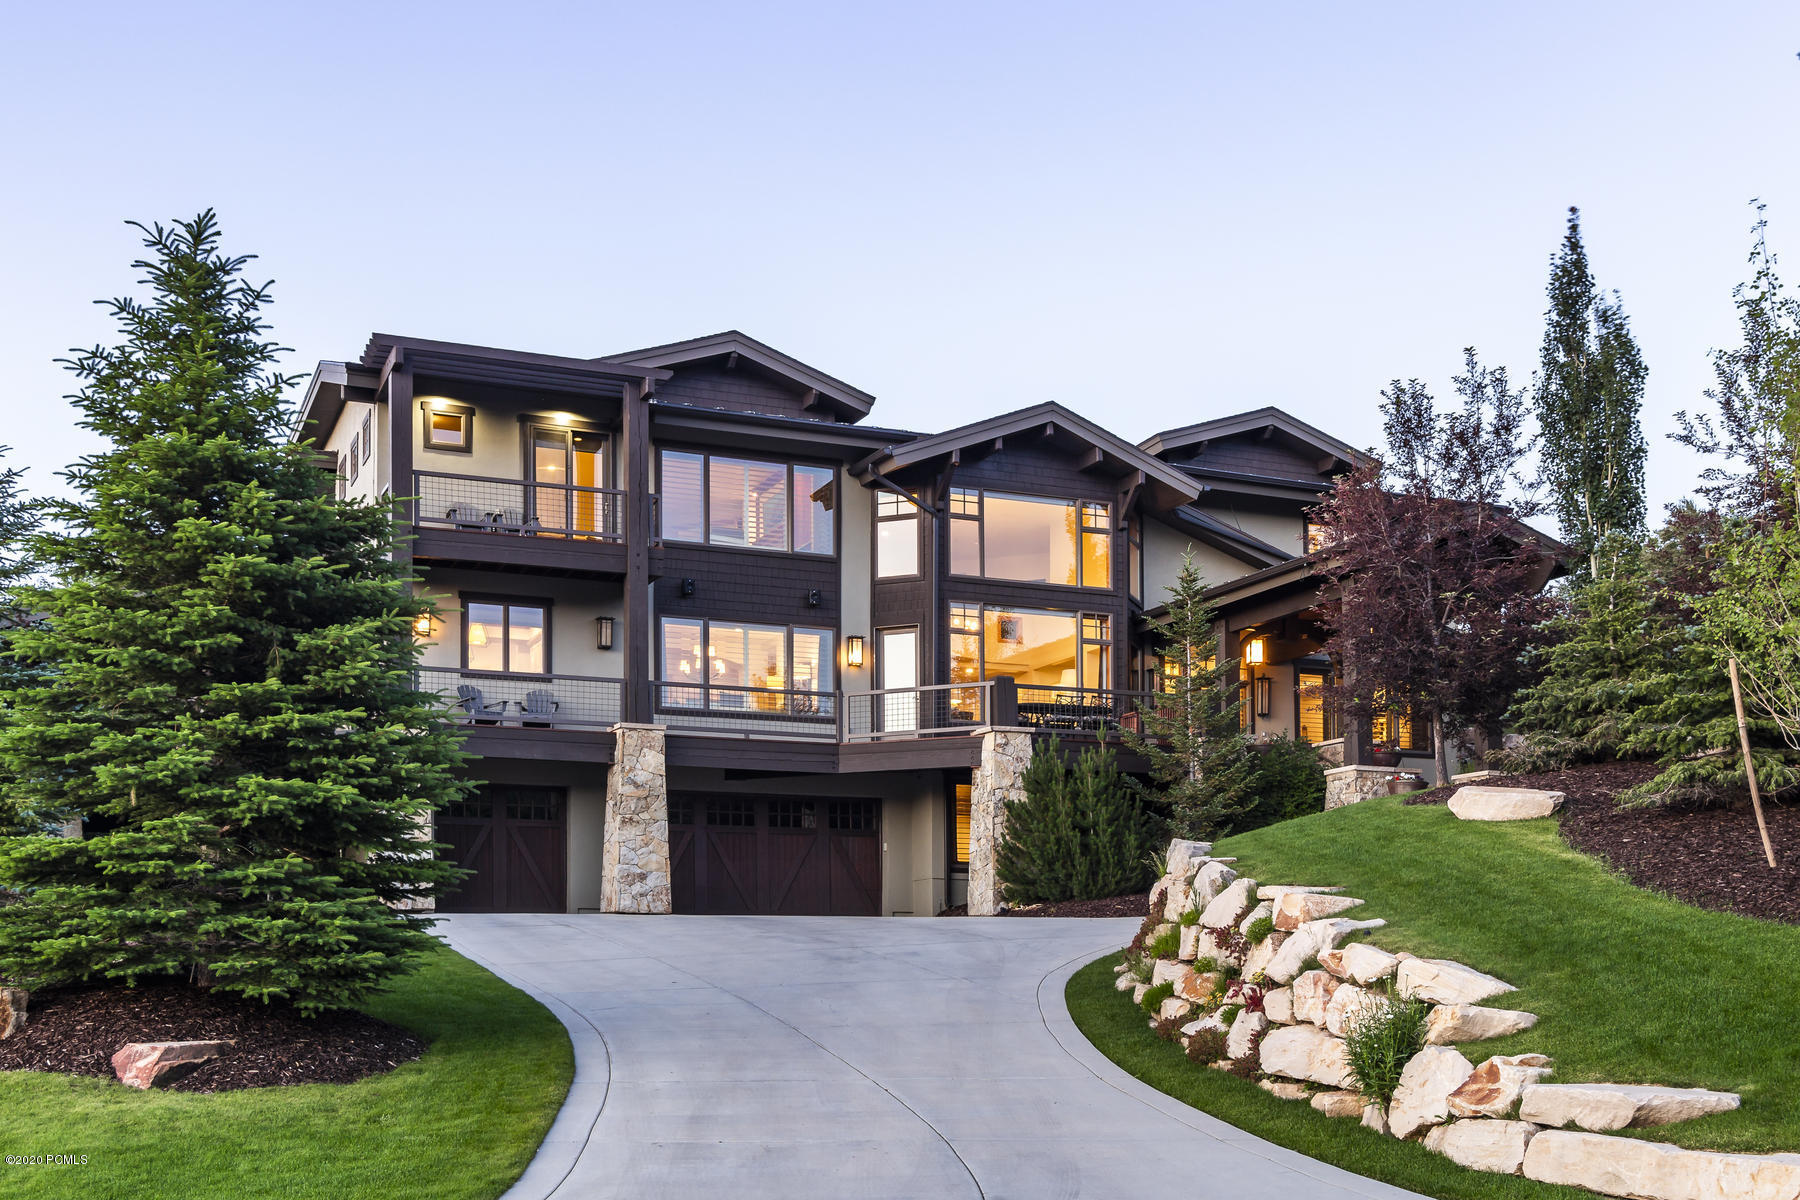 7340 Pine Ridge Dr Drive, Park City, Utah 84098, 5 Bedrooms Bedrooms, ,7 BathroomsBathrooms,Single Family,For Sale,Pine Ridge Dr,20190109112430415765000000